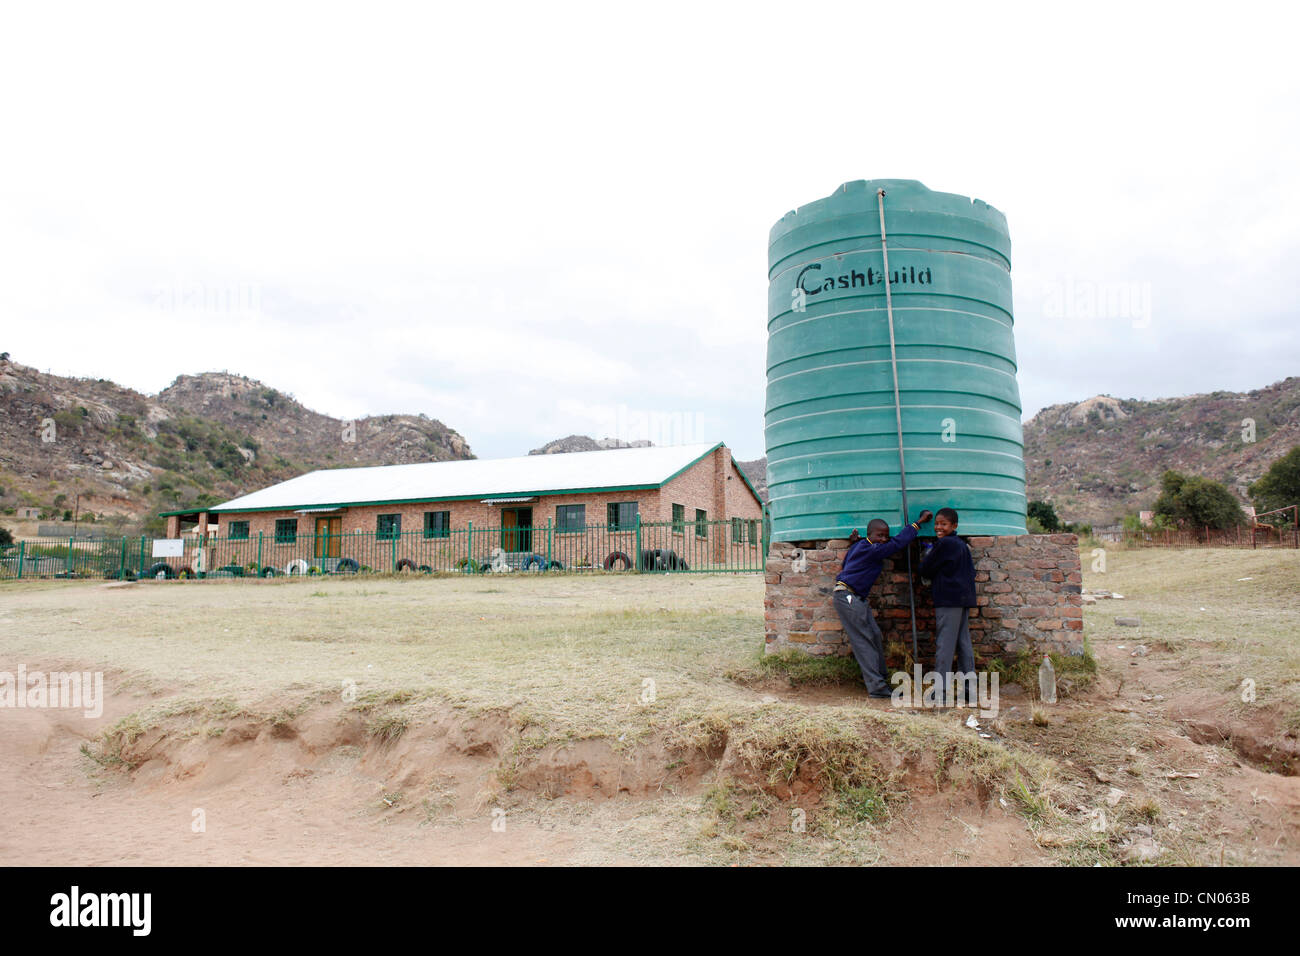 Students collect water from a tank installed in their school playground. Hlau Hlau, Mpumalanga, South Africa - Stock Image